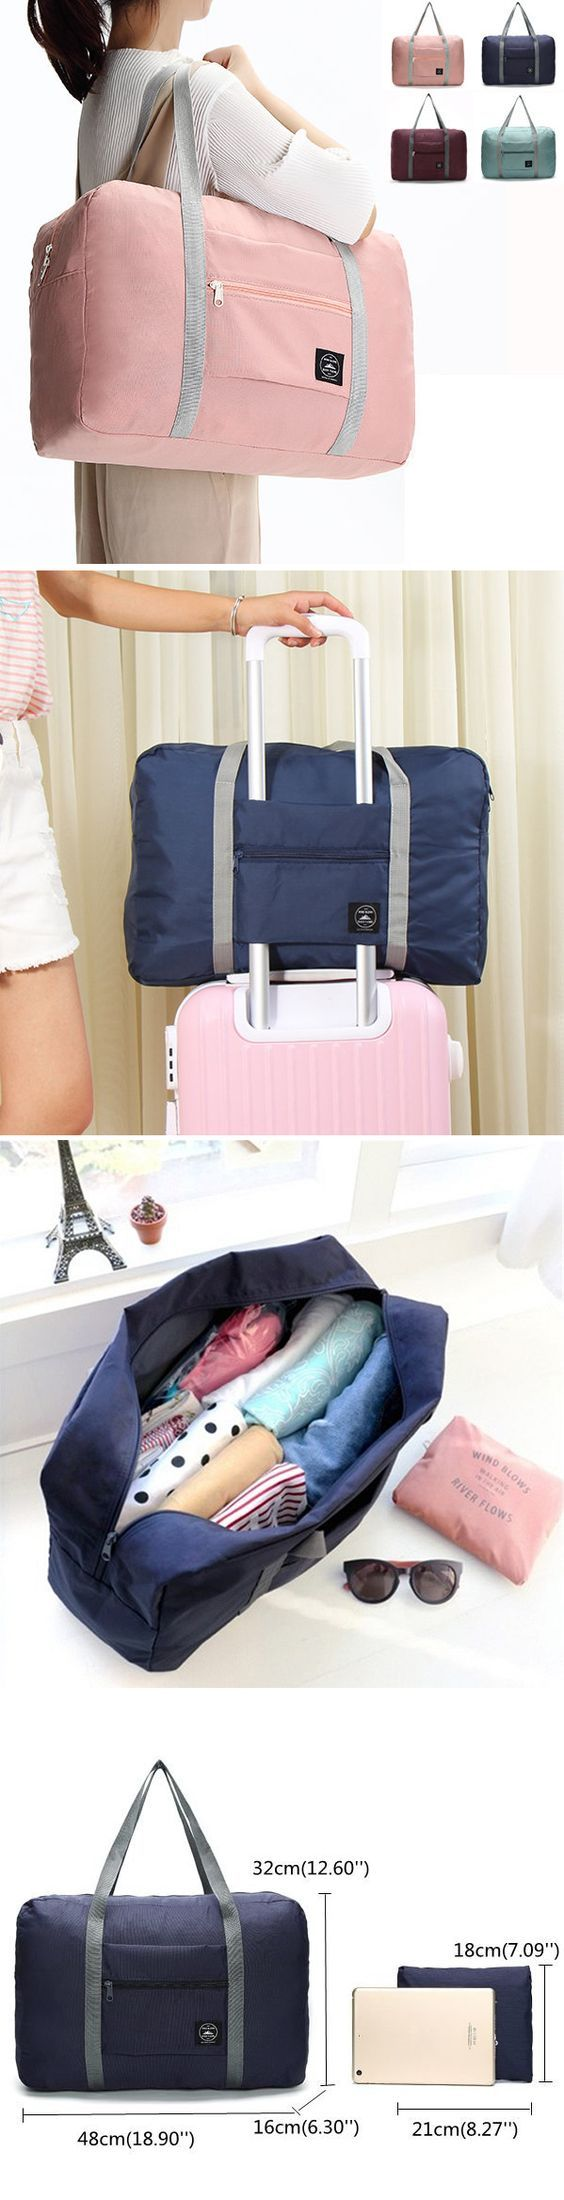 US$9.99 Women Men Folding Waterproof Luggage Bags Unisex Fitness Bag Outdoor Travel Bags